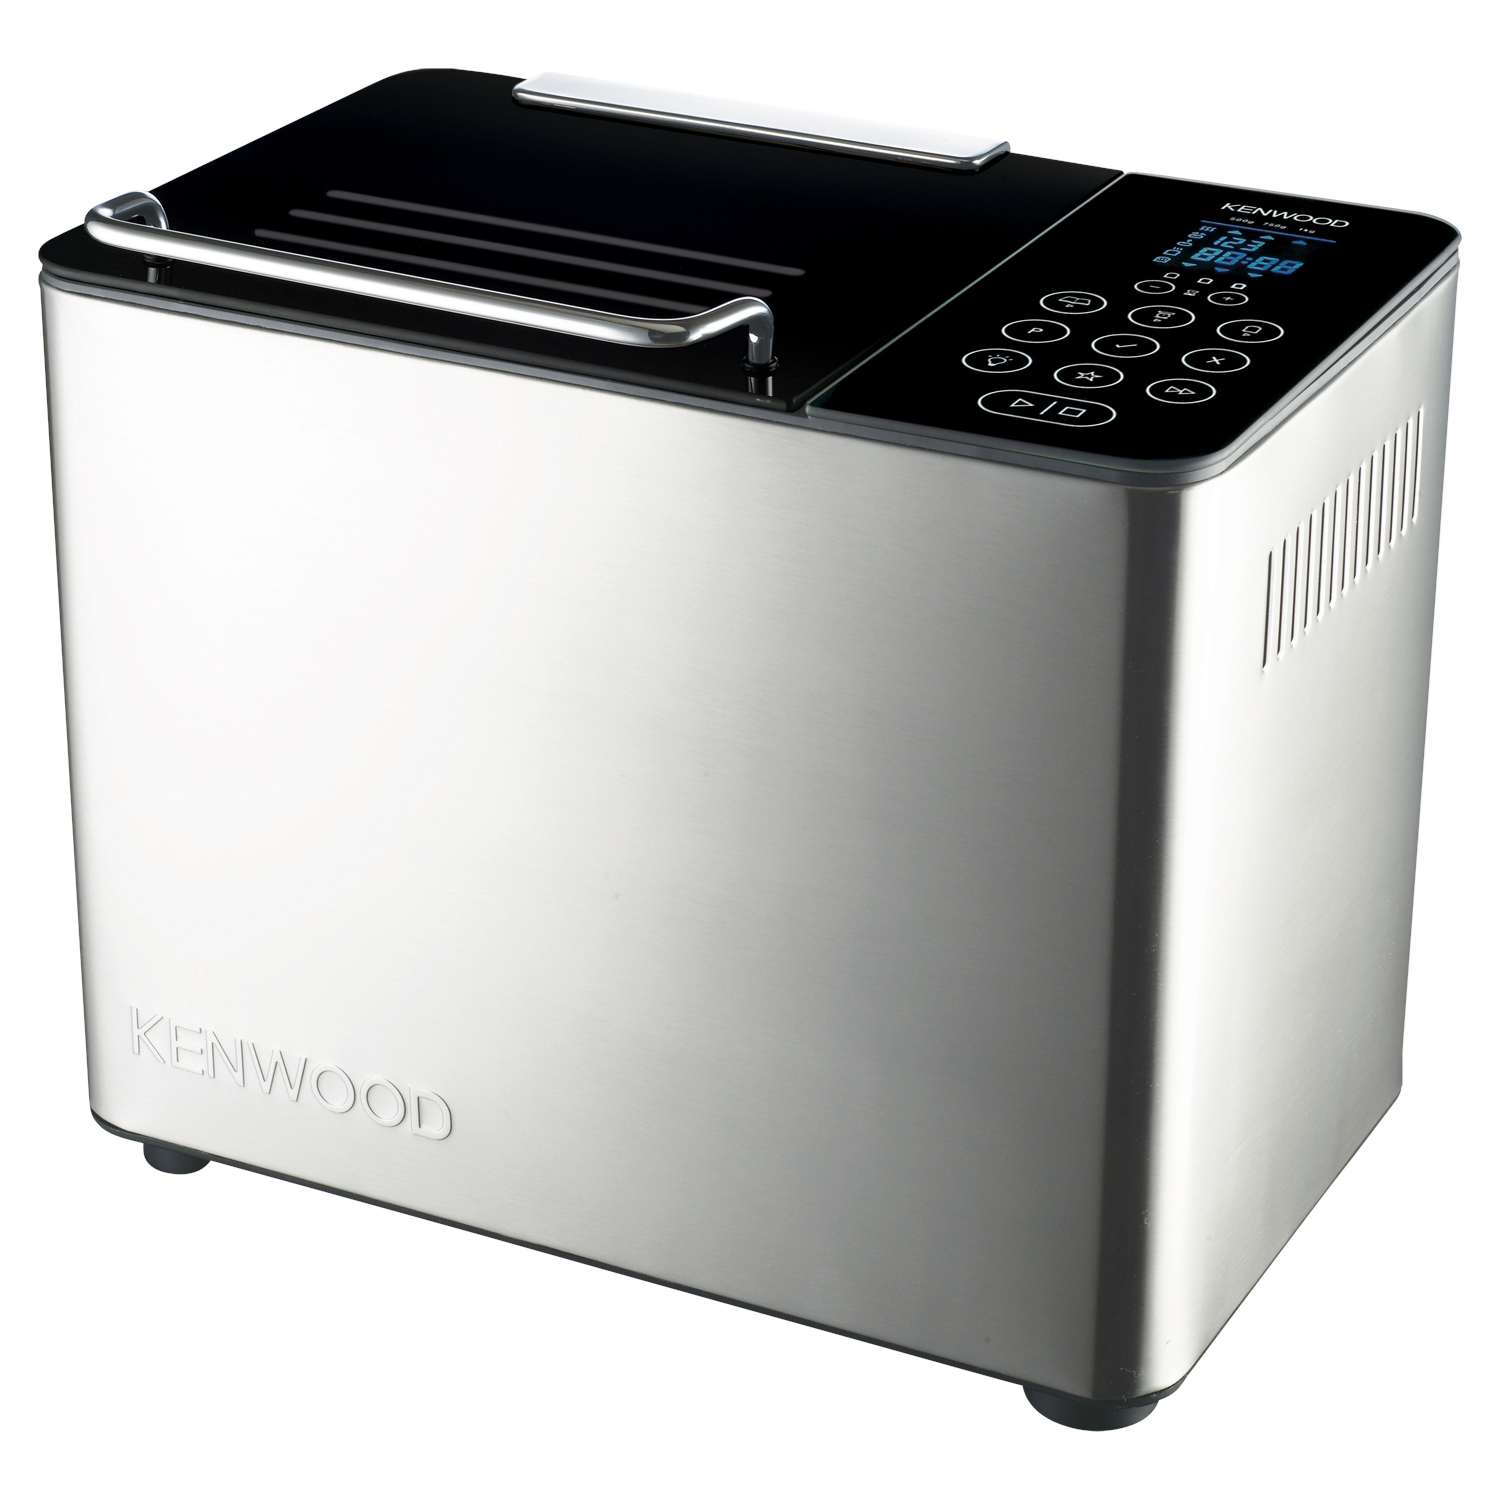 Kenwood BM450 Breadmaker, Capacity (3 Bread sizes) 500g,750g,1kg, 15 programs, 15h Delay time